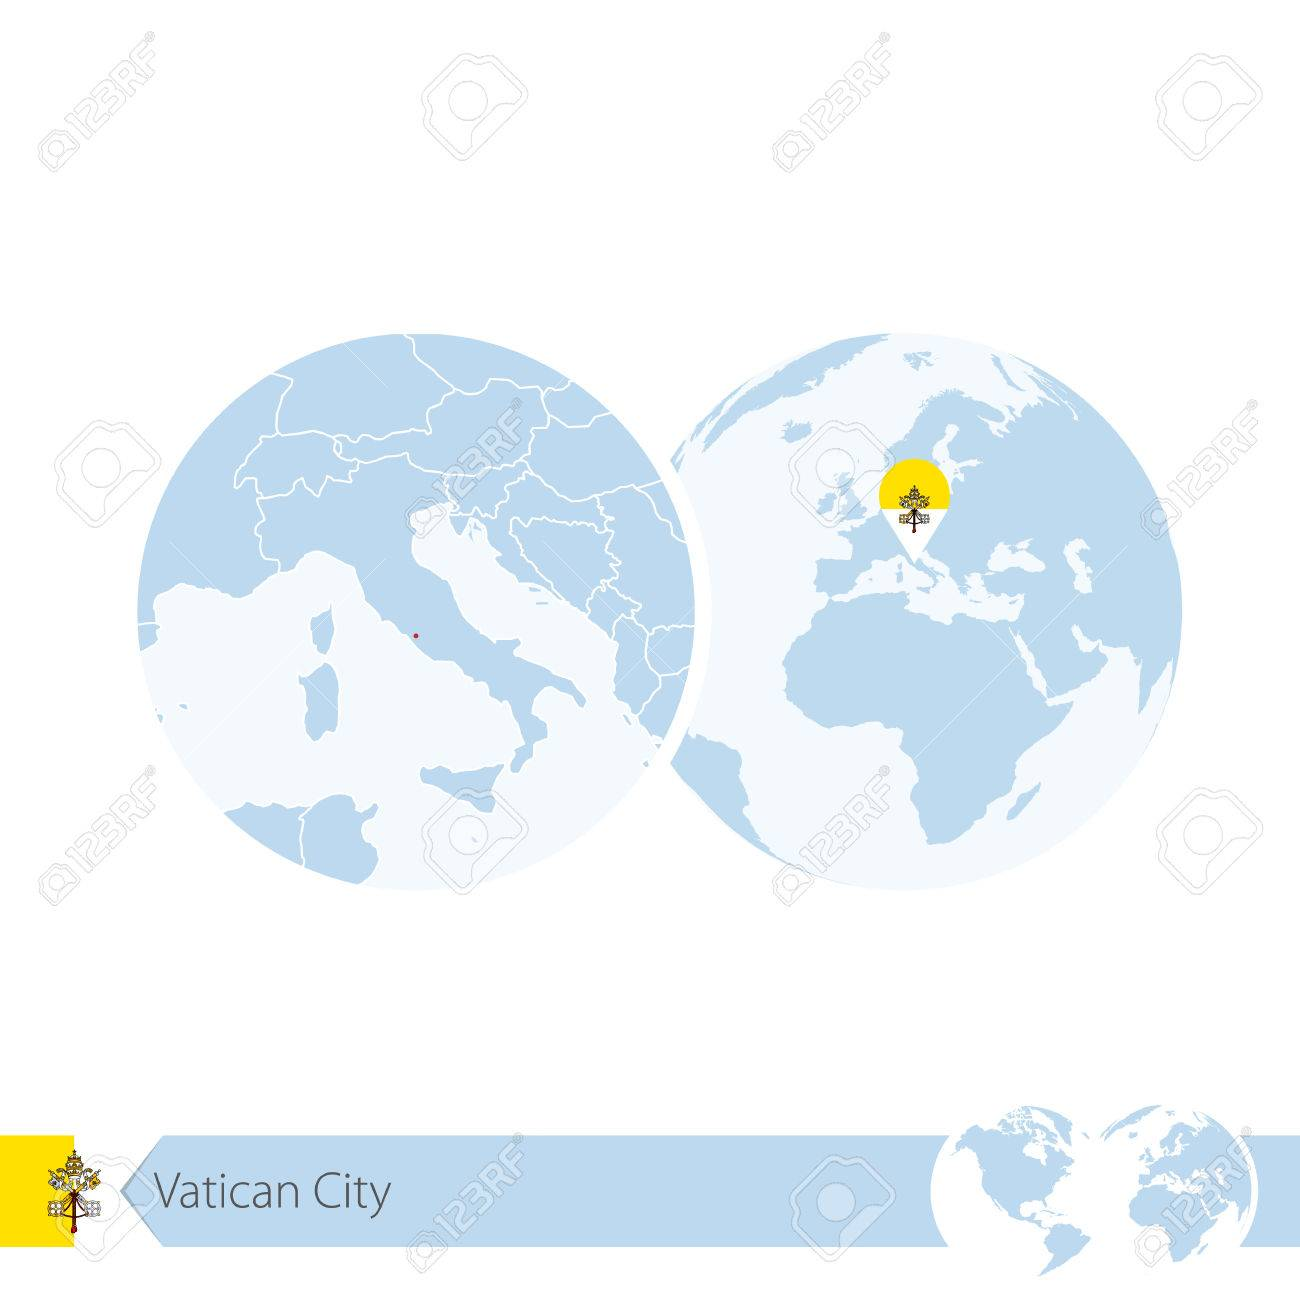 Vatican city on world globe with flag and regional map of vatican vatican city on world globe with flag and regional map of vatican city illustration gumiabroncs Image collections